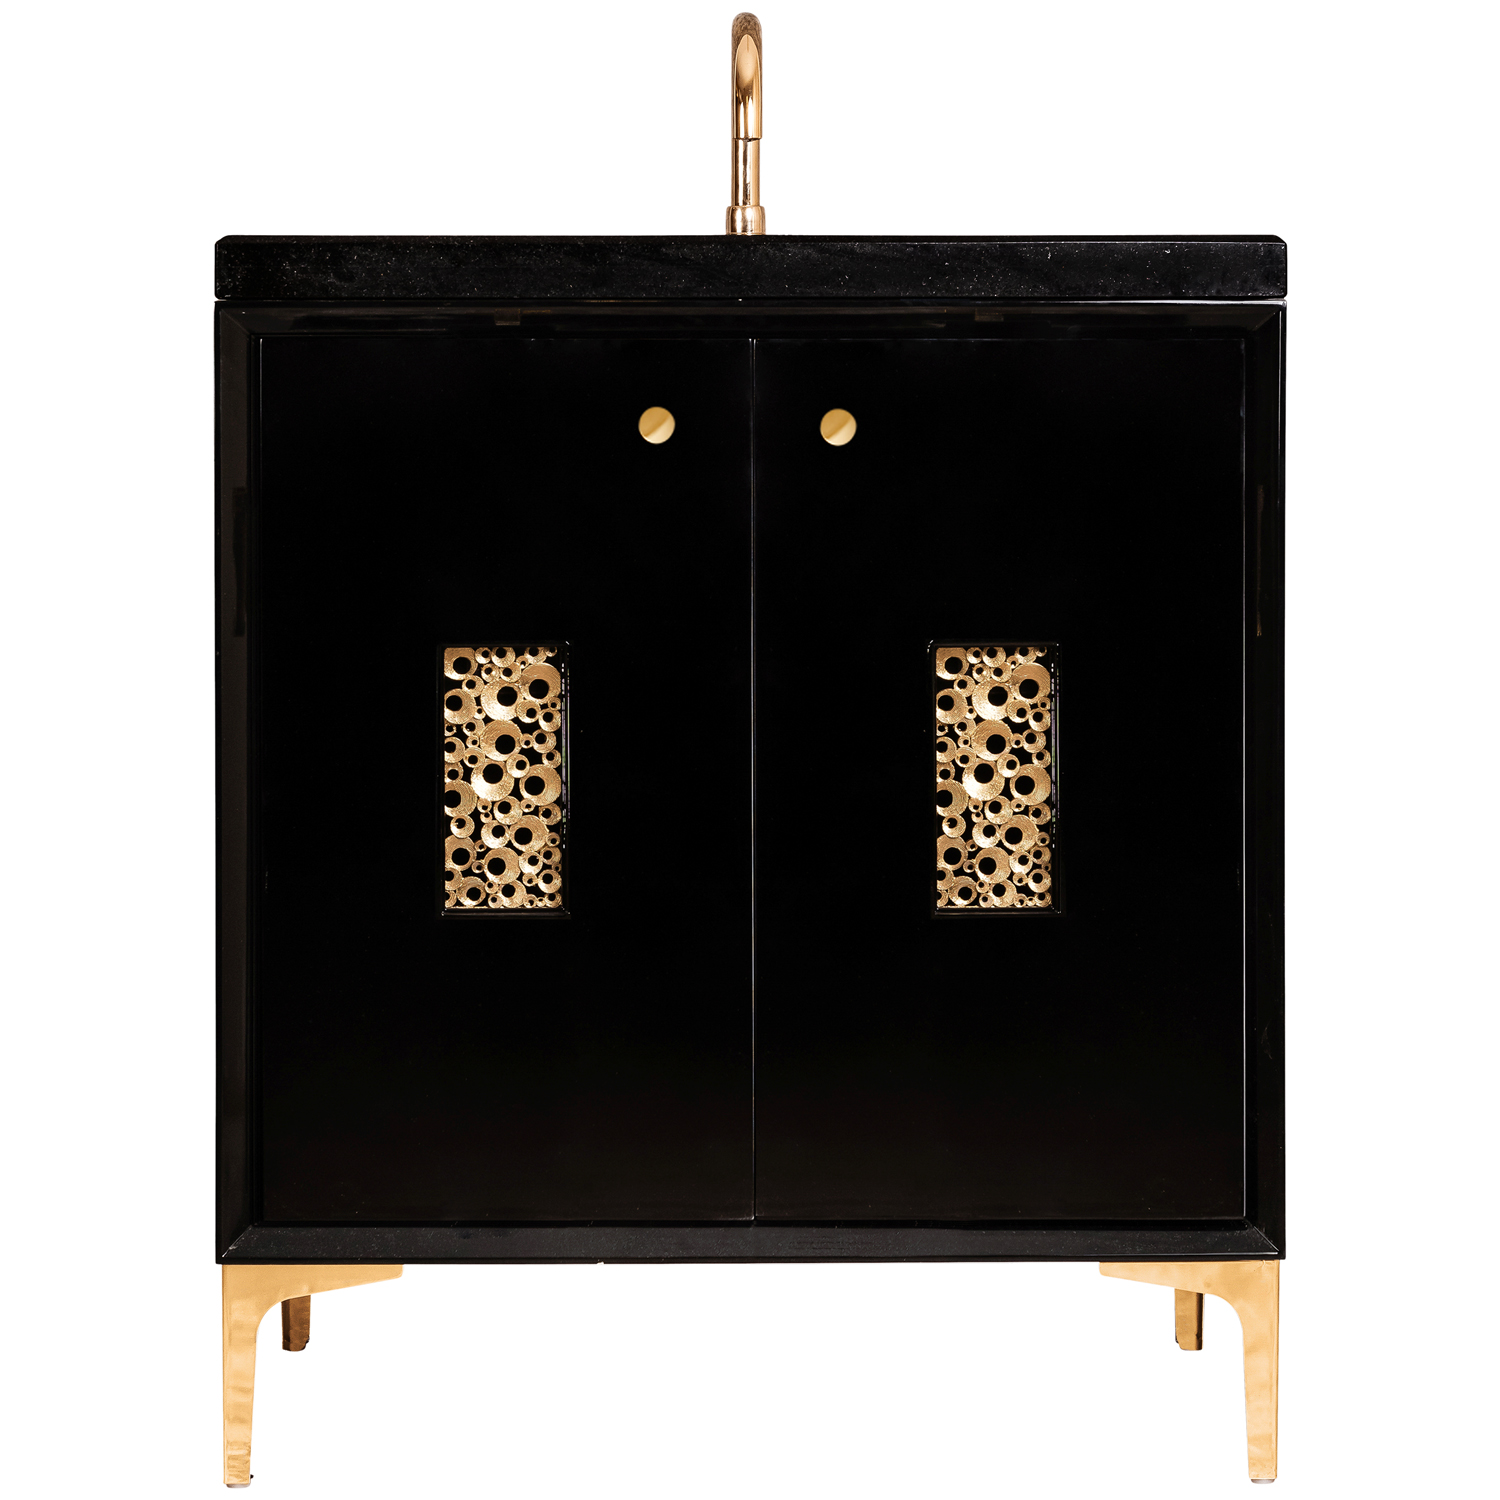 """VAN30B-0010 30"""" Black Frame With Coral - Shown with PB (Polished Brass)"""